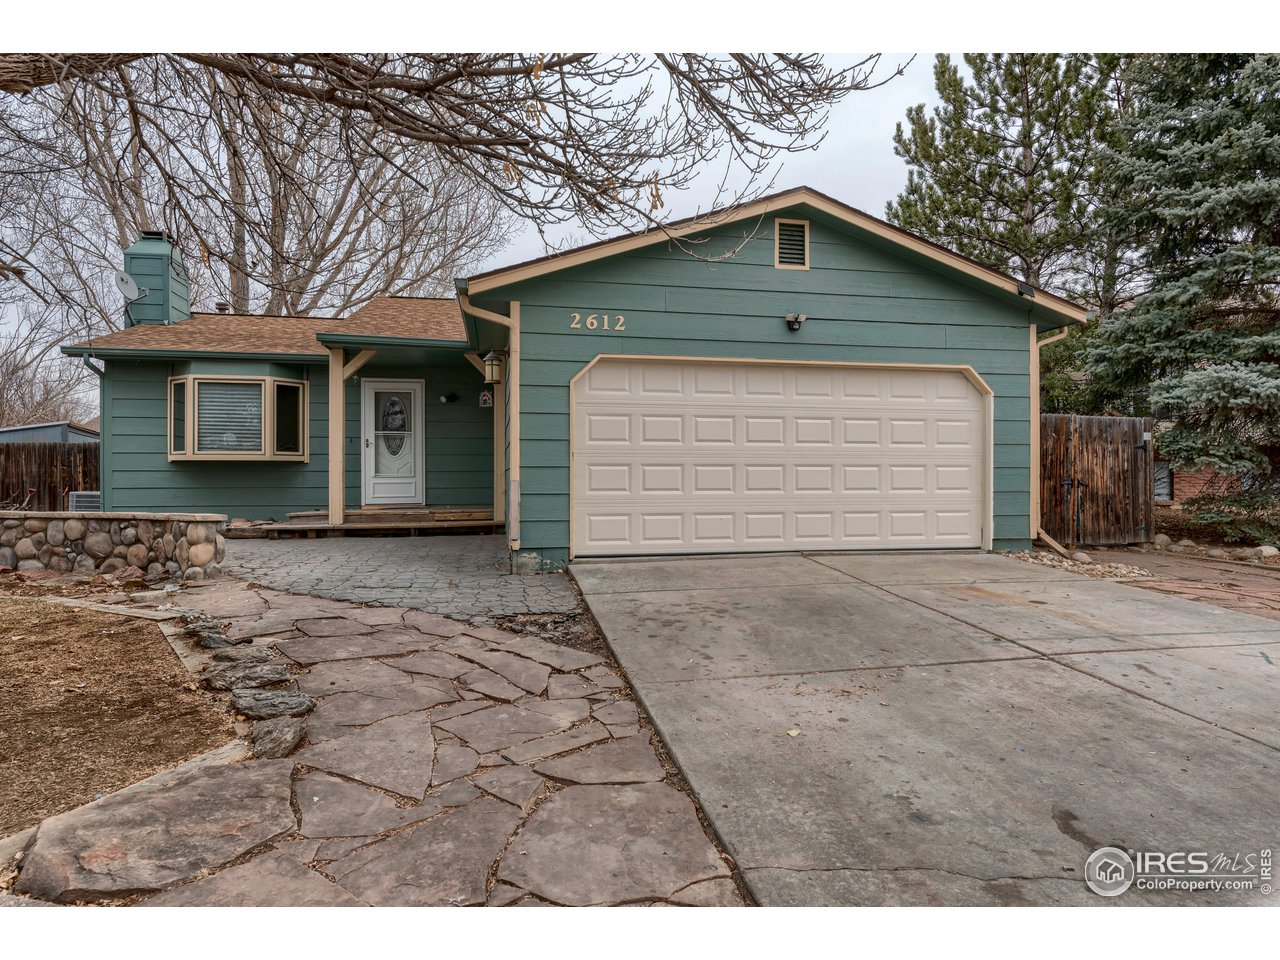 2612 Wapiti Rd, Fort Collins CO 80525